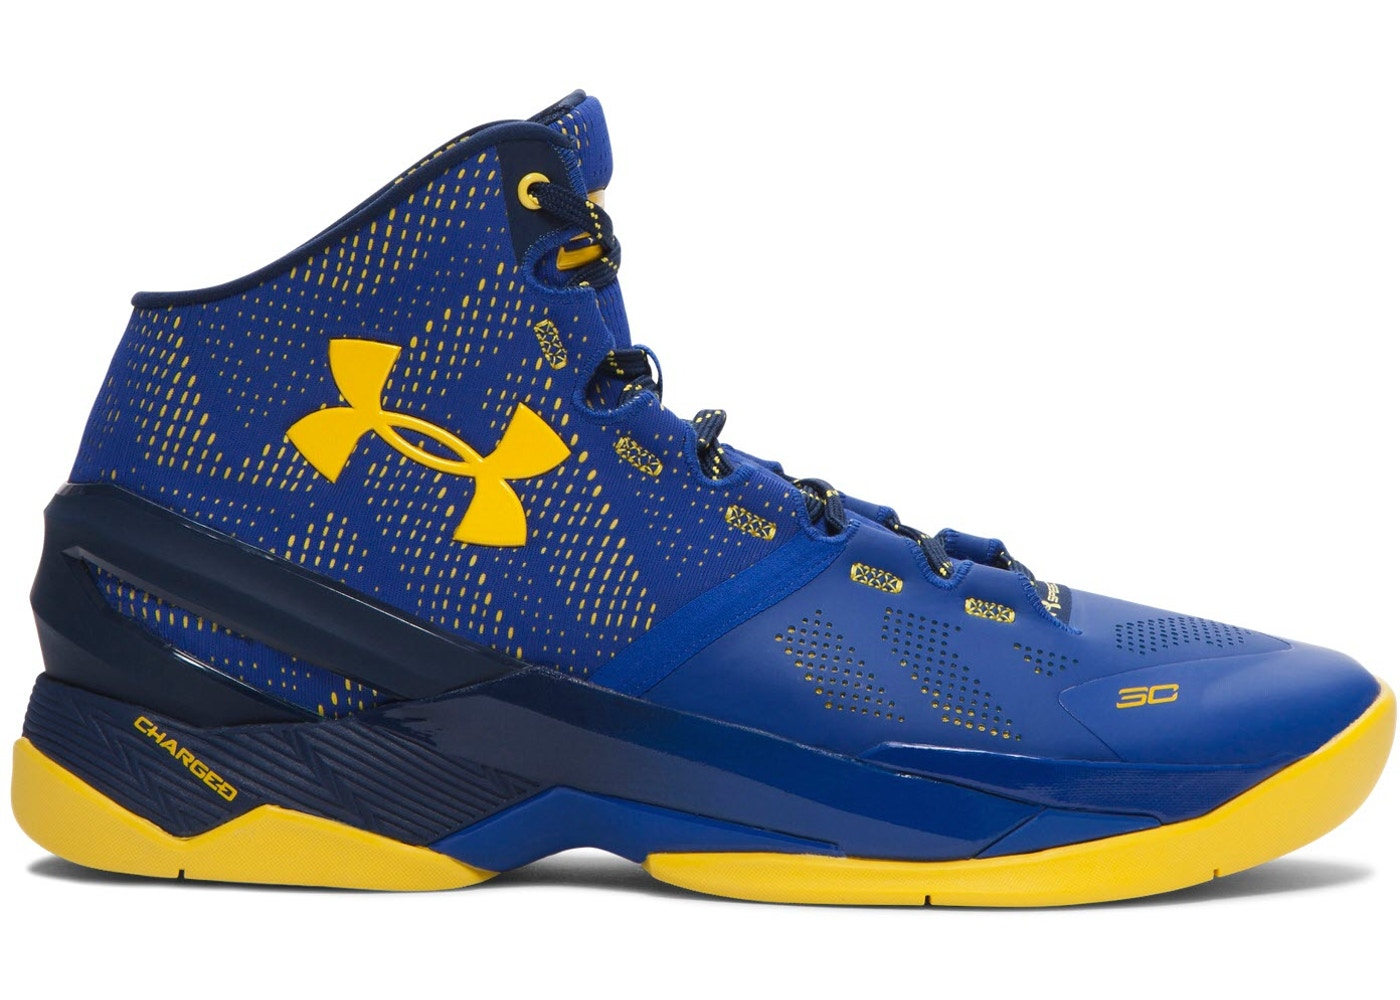 5df2fbcf711a Buy Under Armour Size 14 Shoes   Deadstock Sneakers